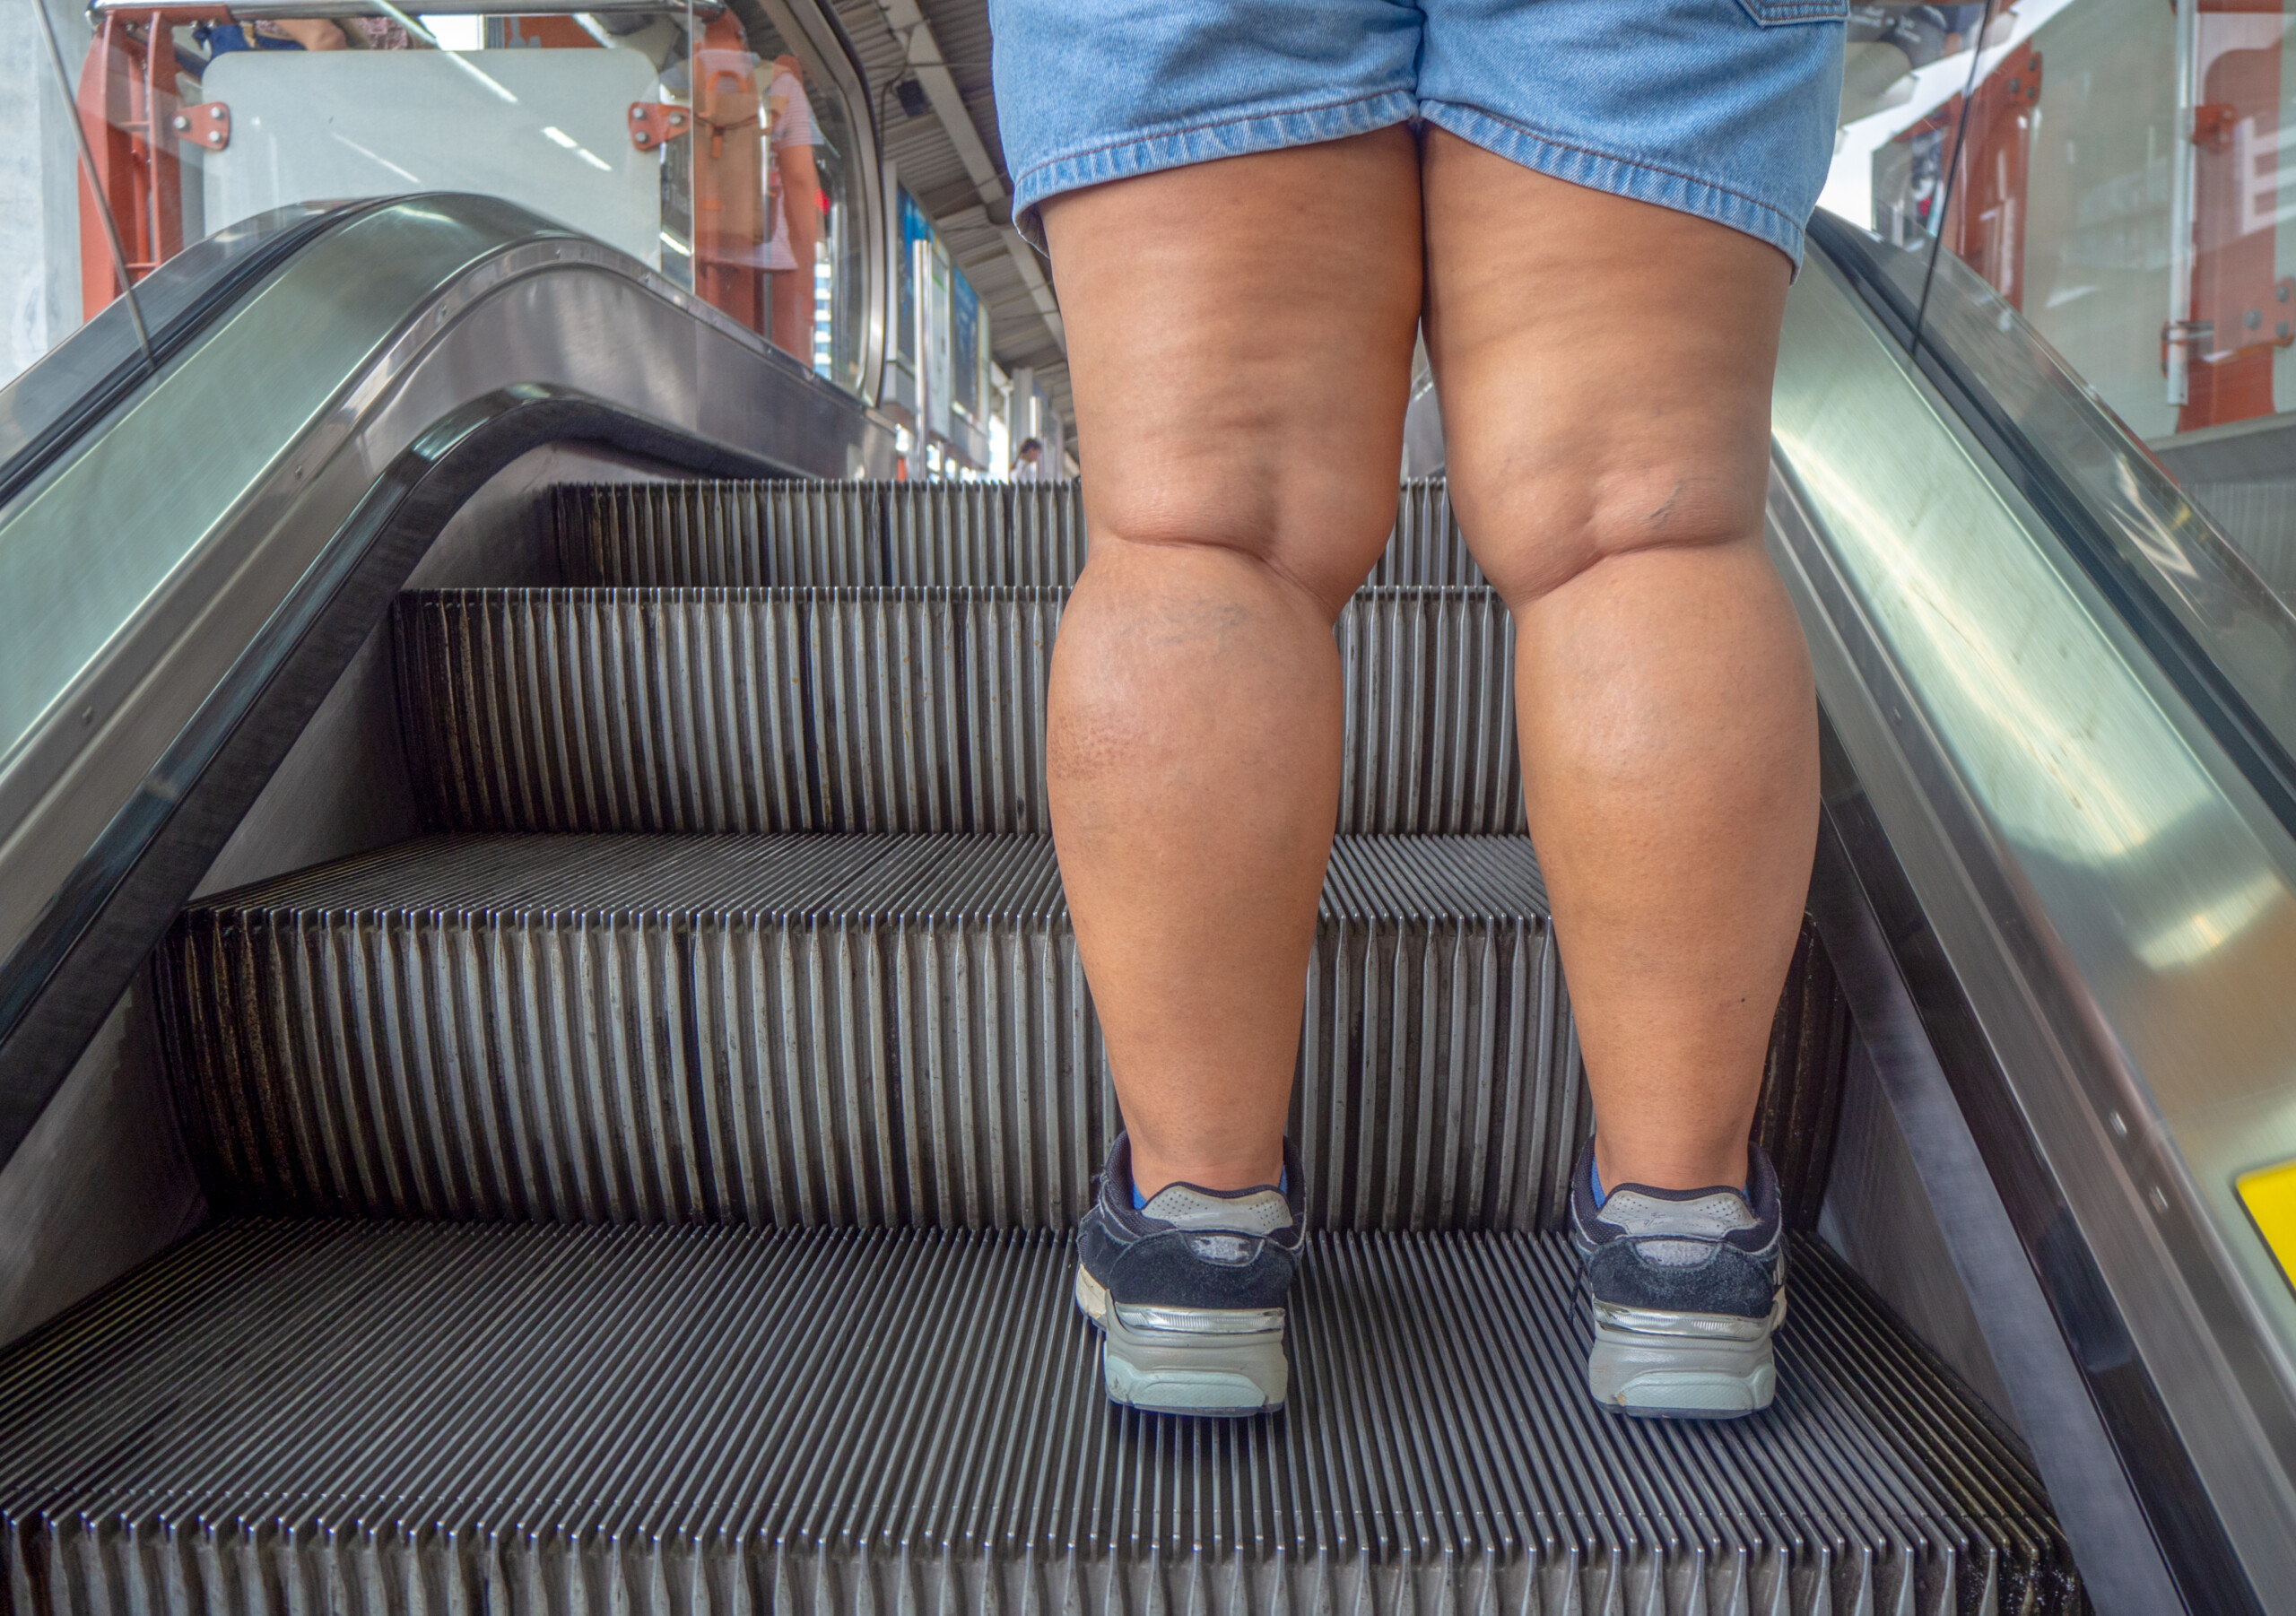 Edema from Fat Look Different than Edema from Heart Failure?